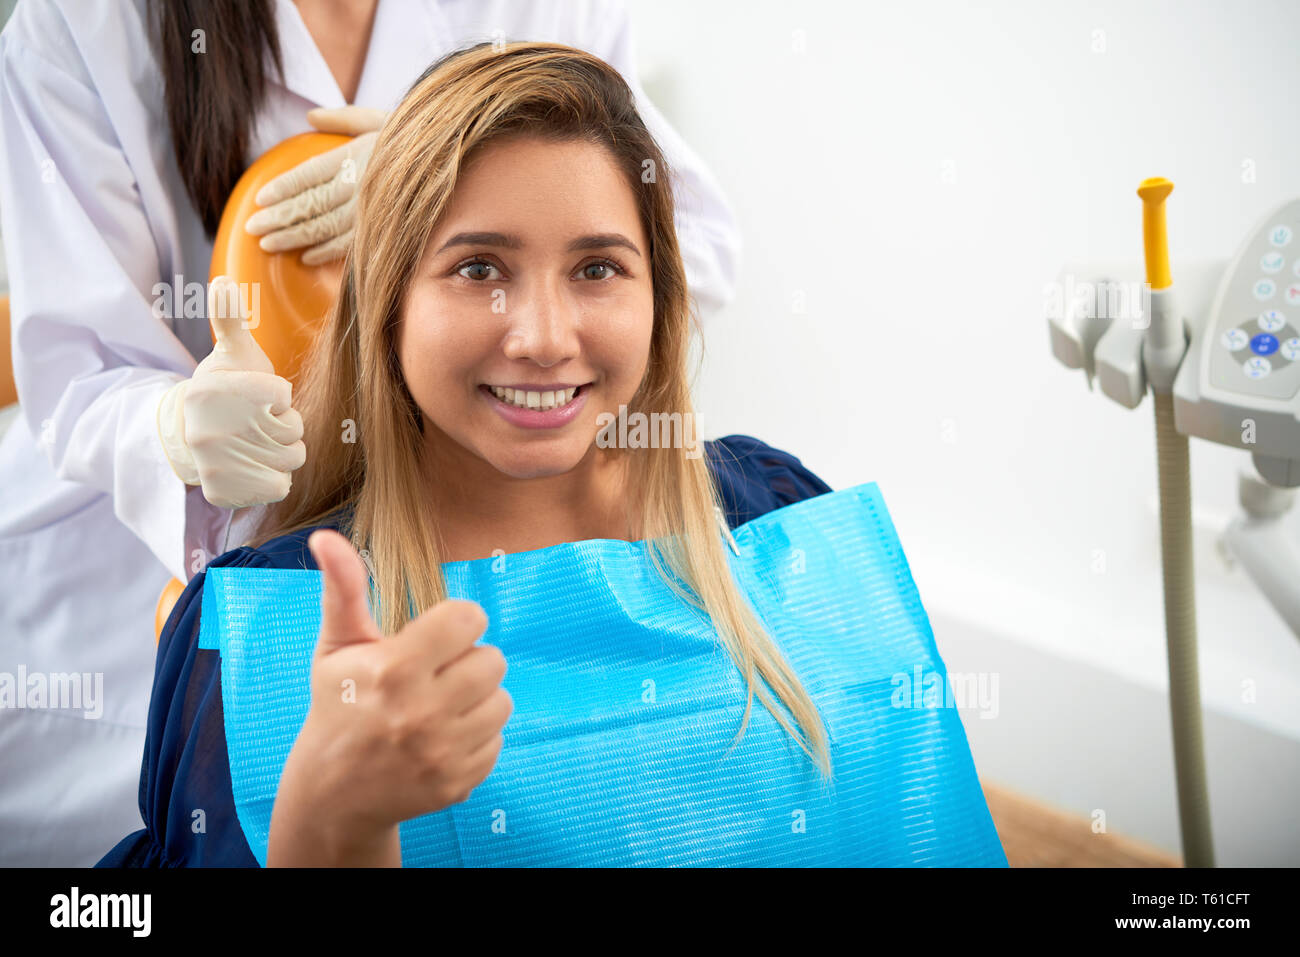 Lovely dentistry patient showing thumbs-up - Stock Image